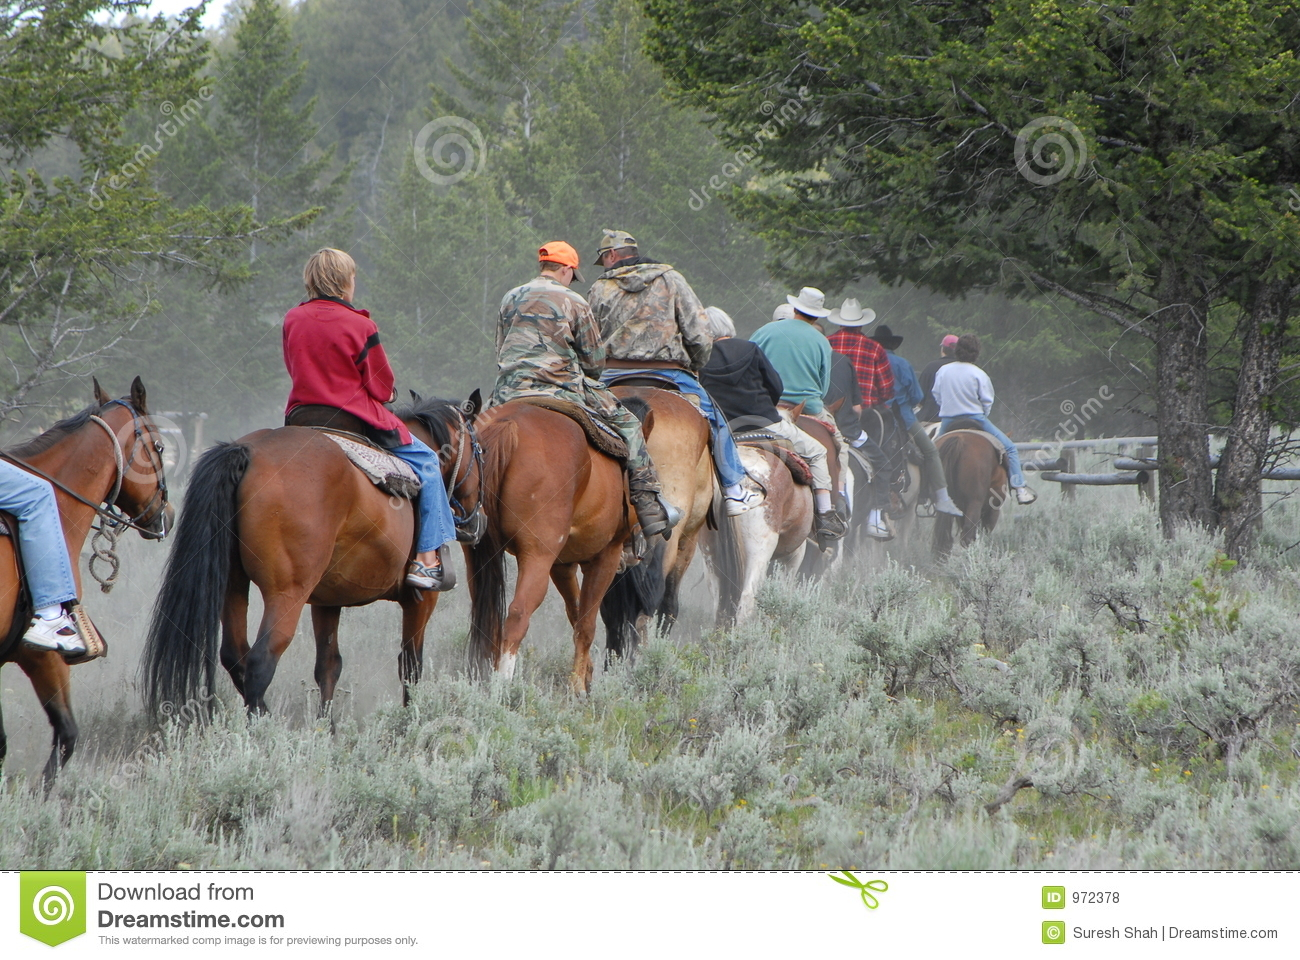 Horse back riding on trail